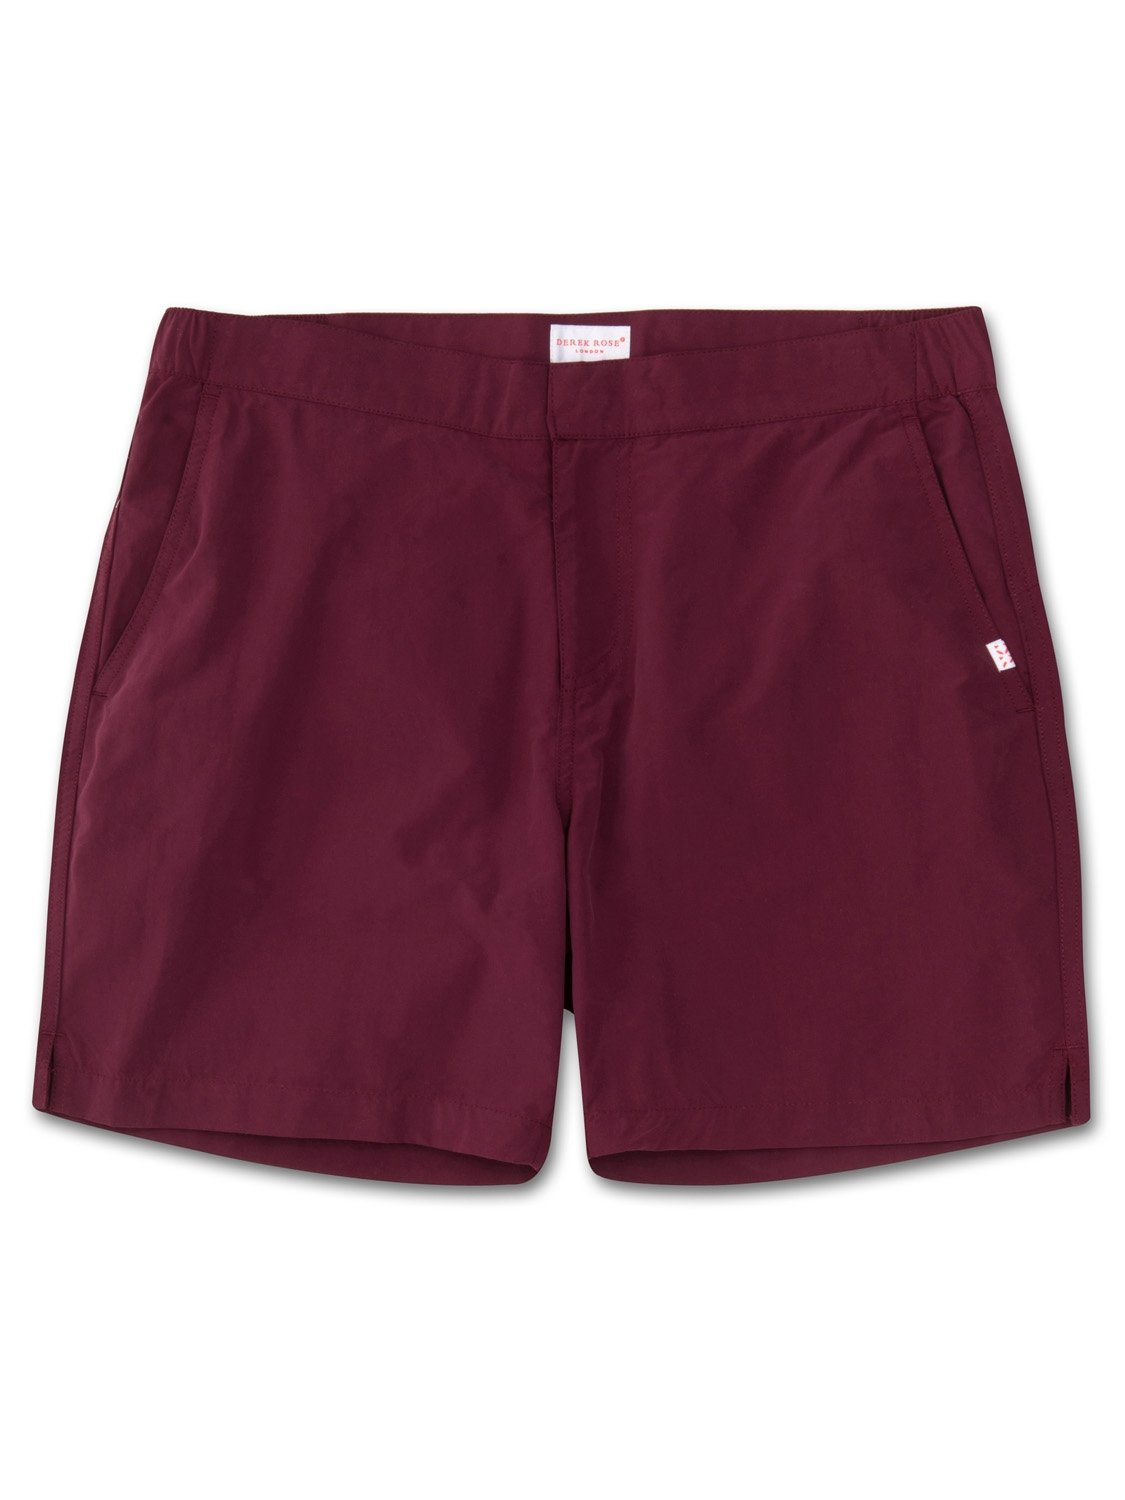 Men's Modern Fit Swim Shorts Aruba Burgundy